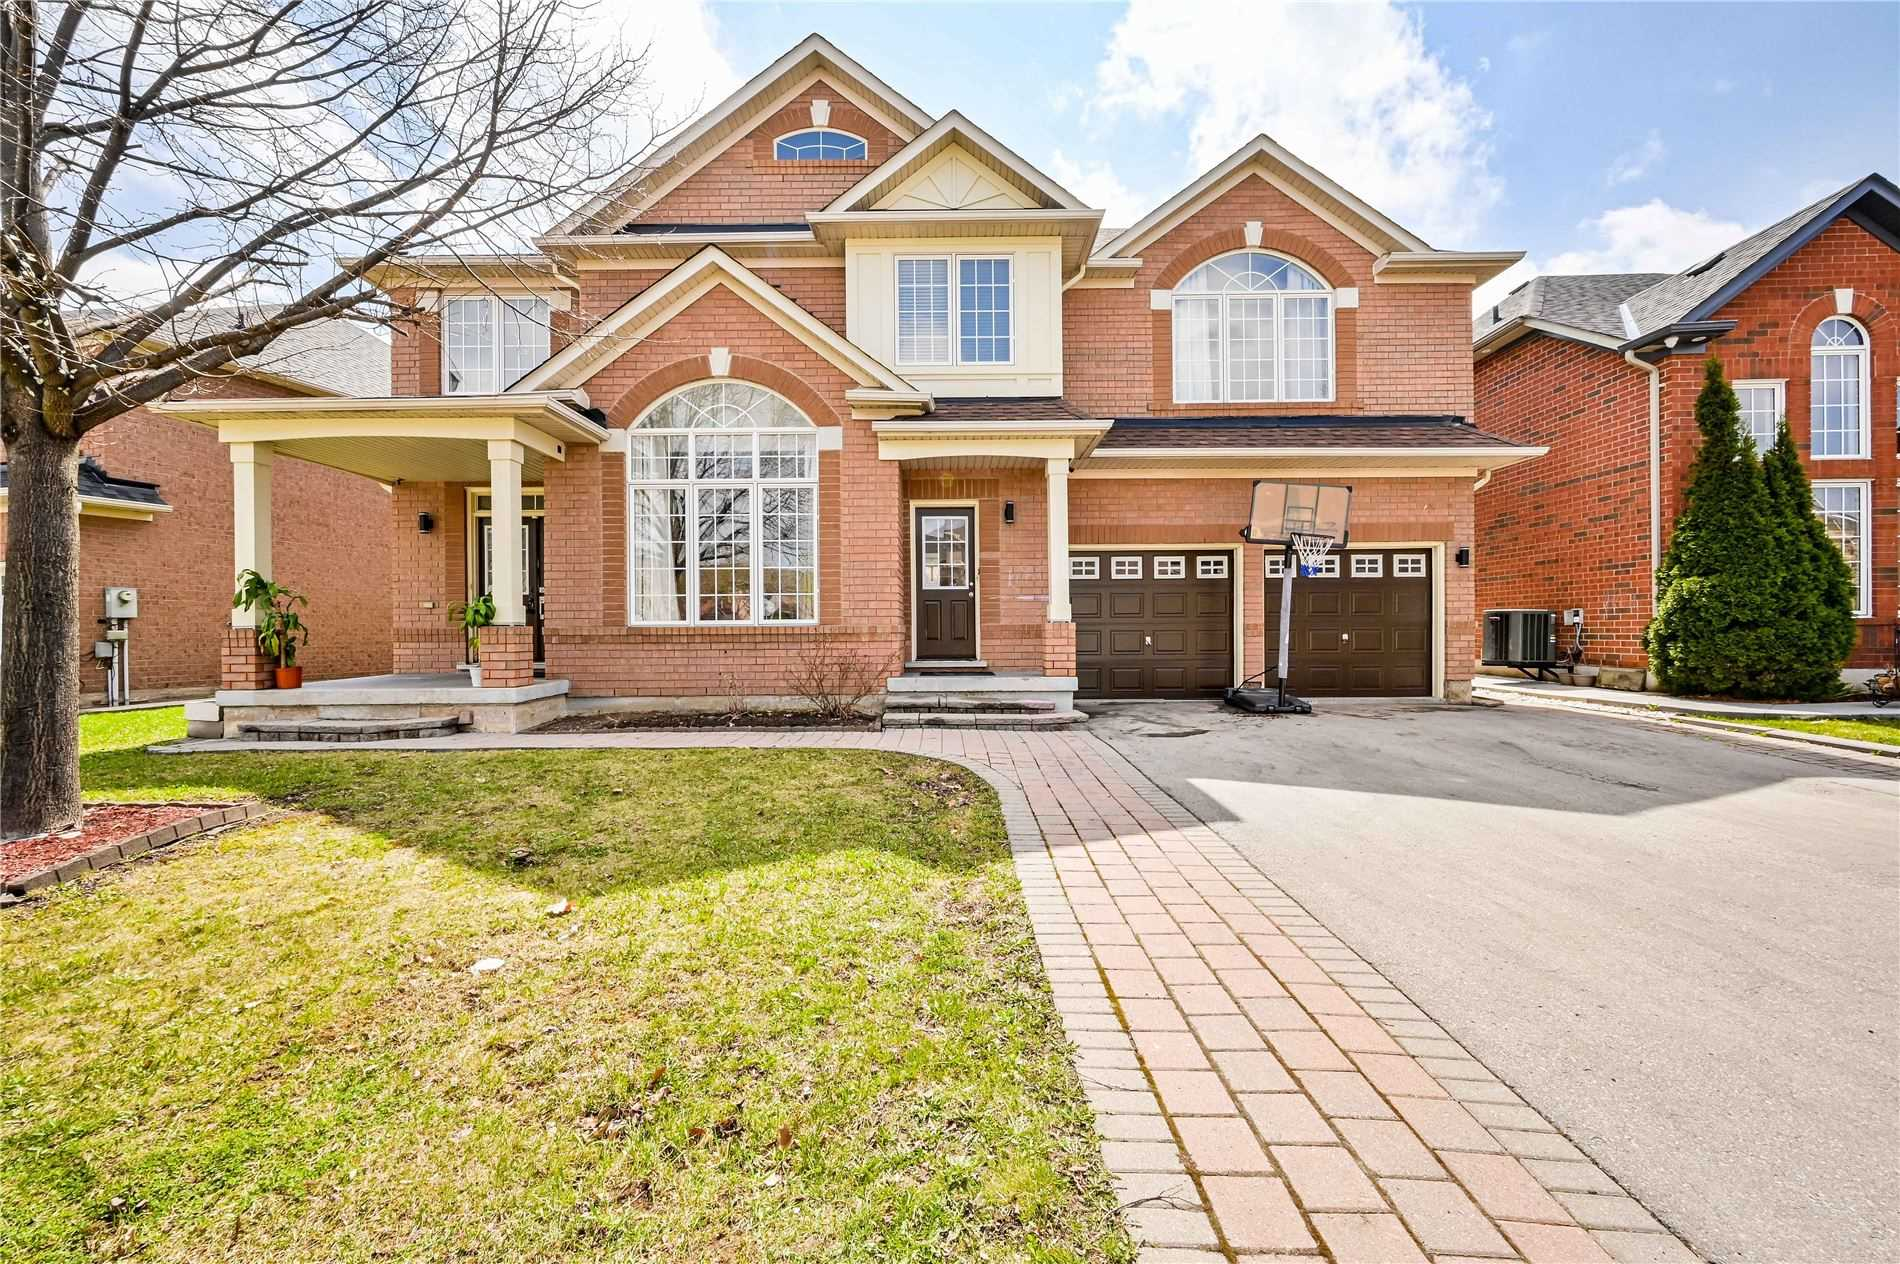 117 Whitwell Dr